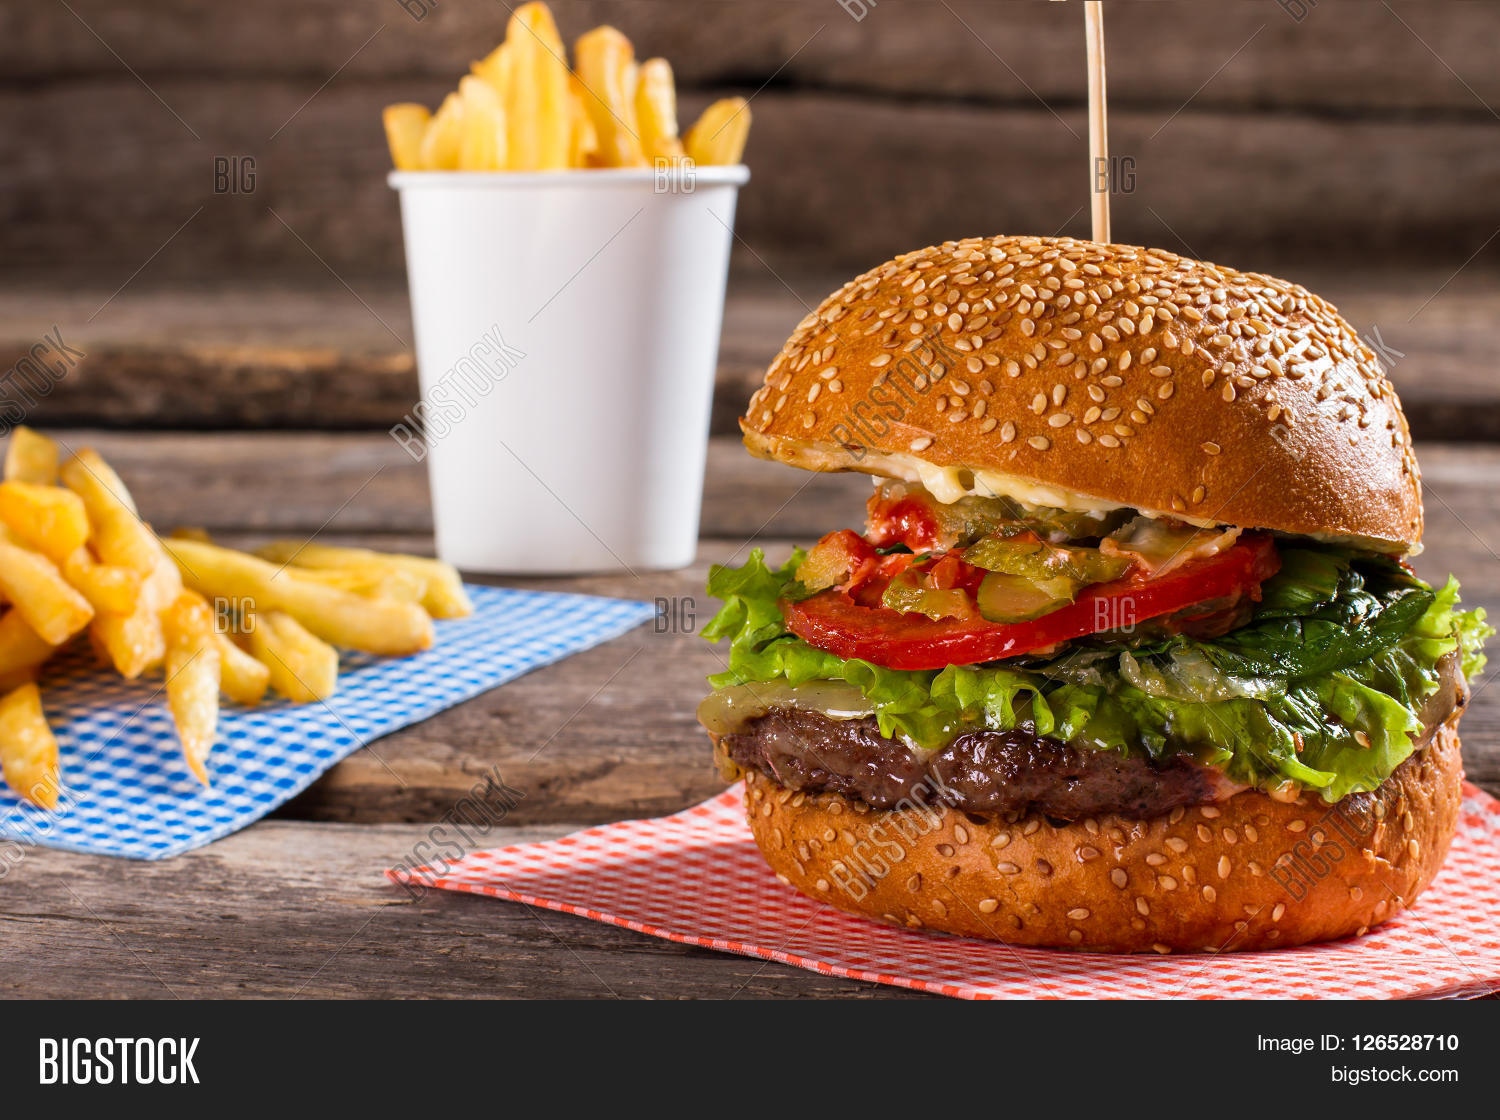 French fries big burger junk food image photo bigstock for Table burger